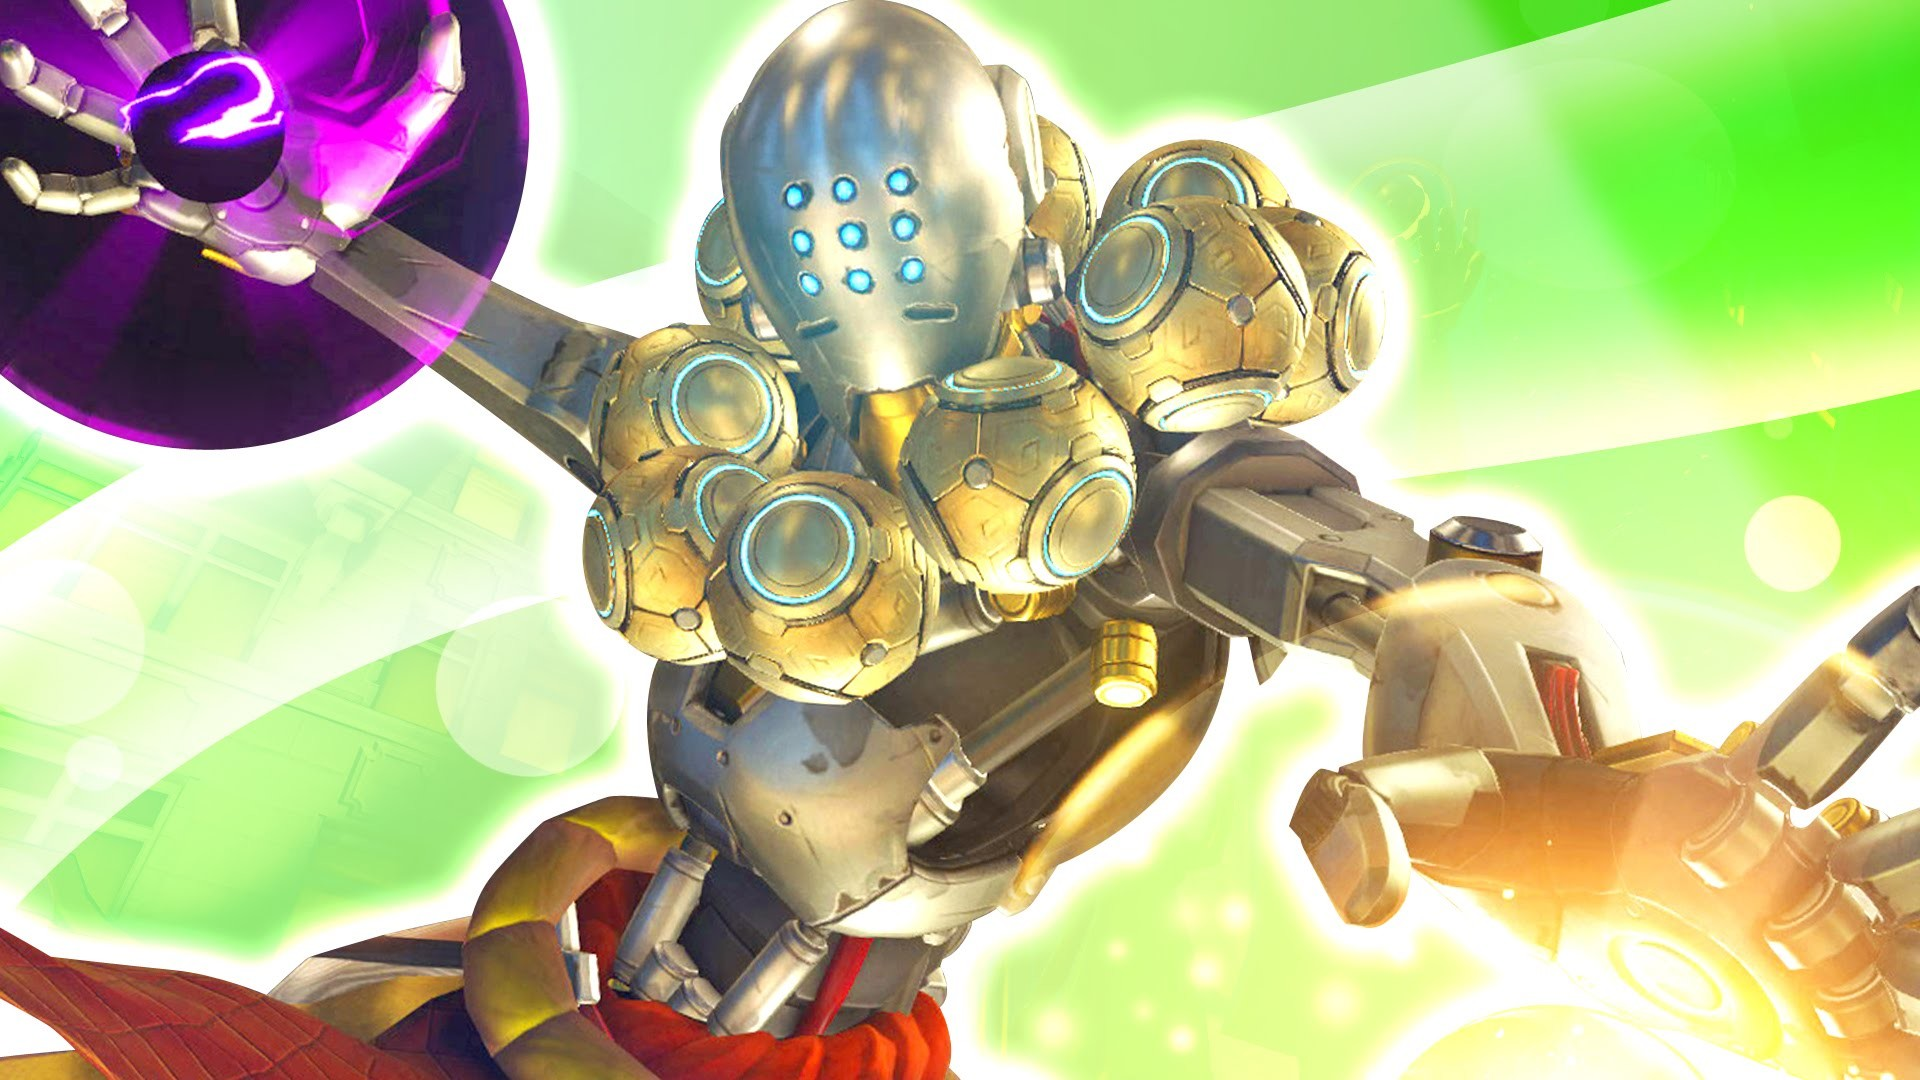 1920x1080 Overwatch Zenyatta Wallpaper For Android